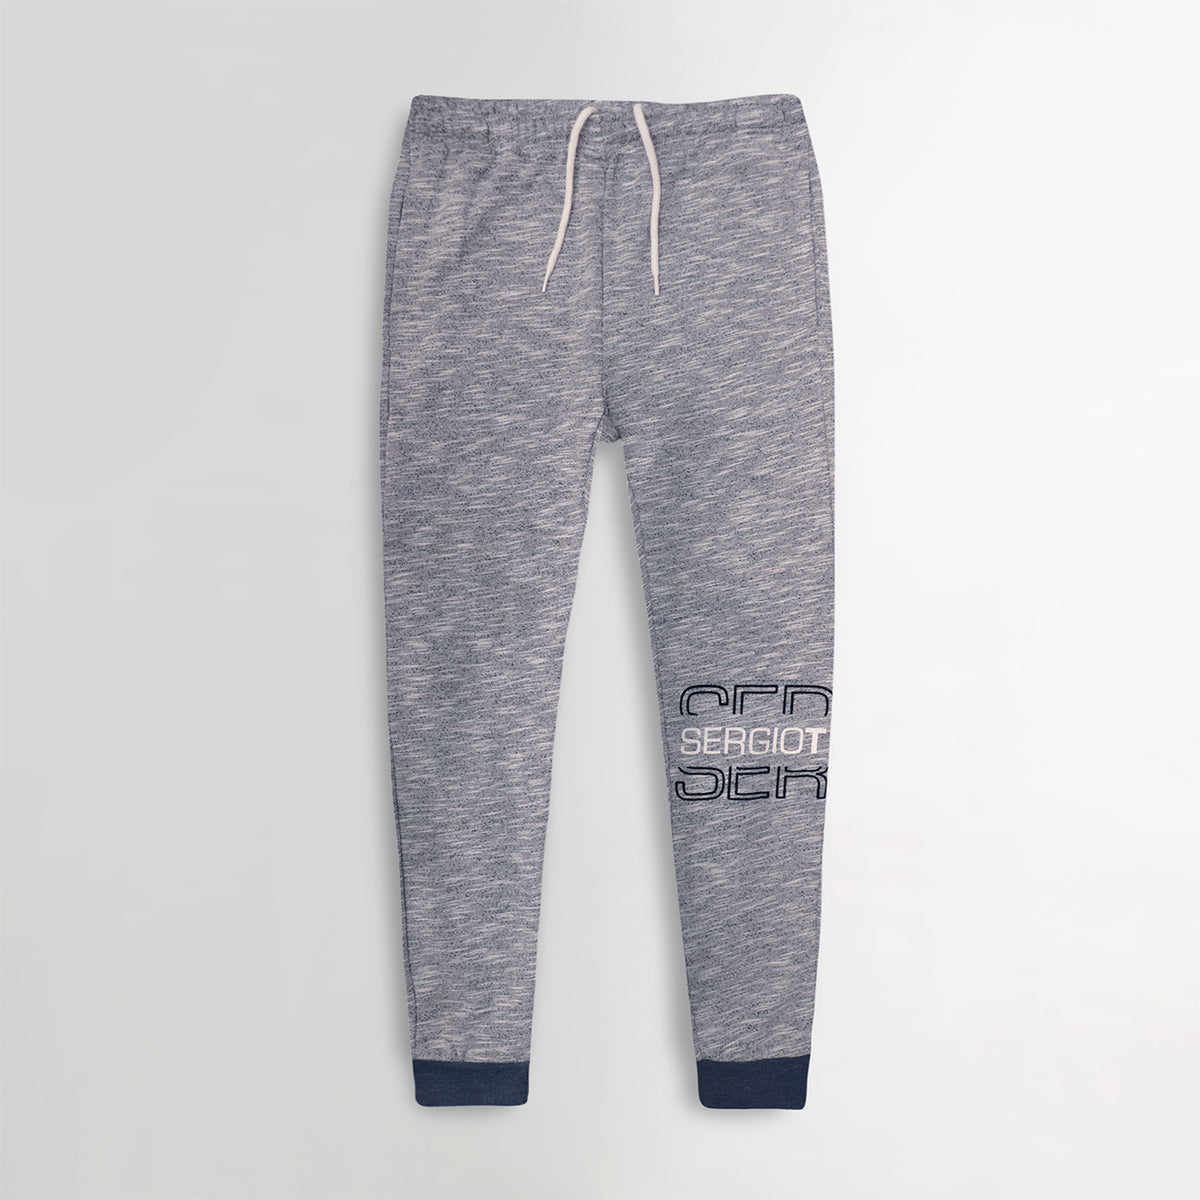 Men Exclusive Textured Grey Slim Fit Printed Jogger Trouser (SR-10624)